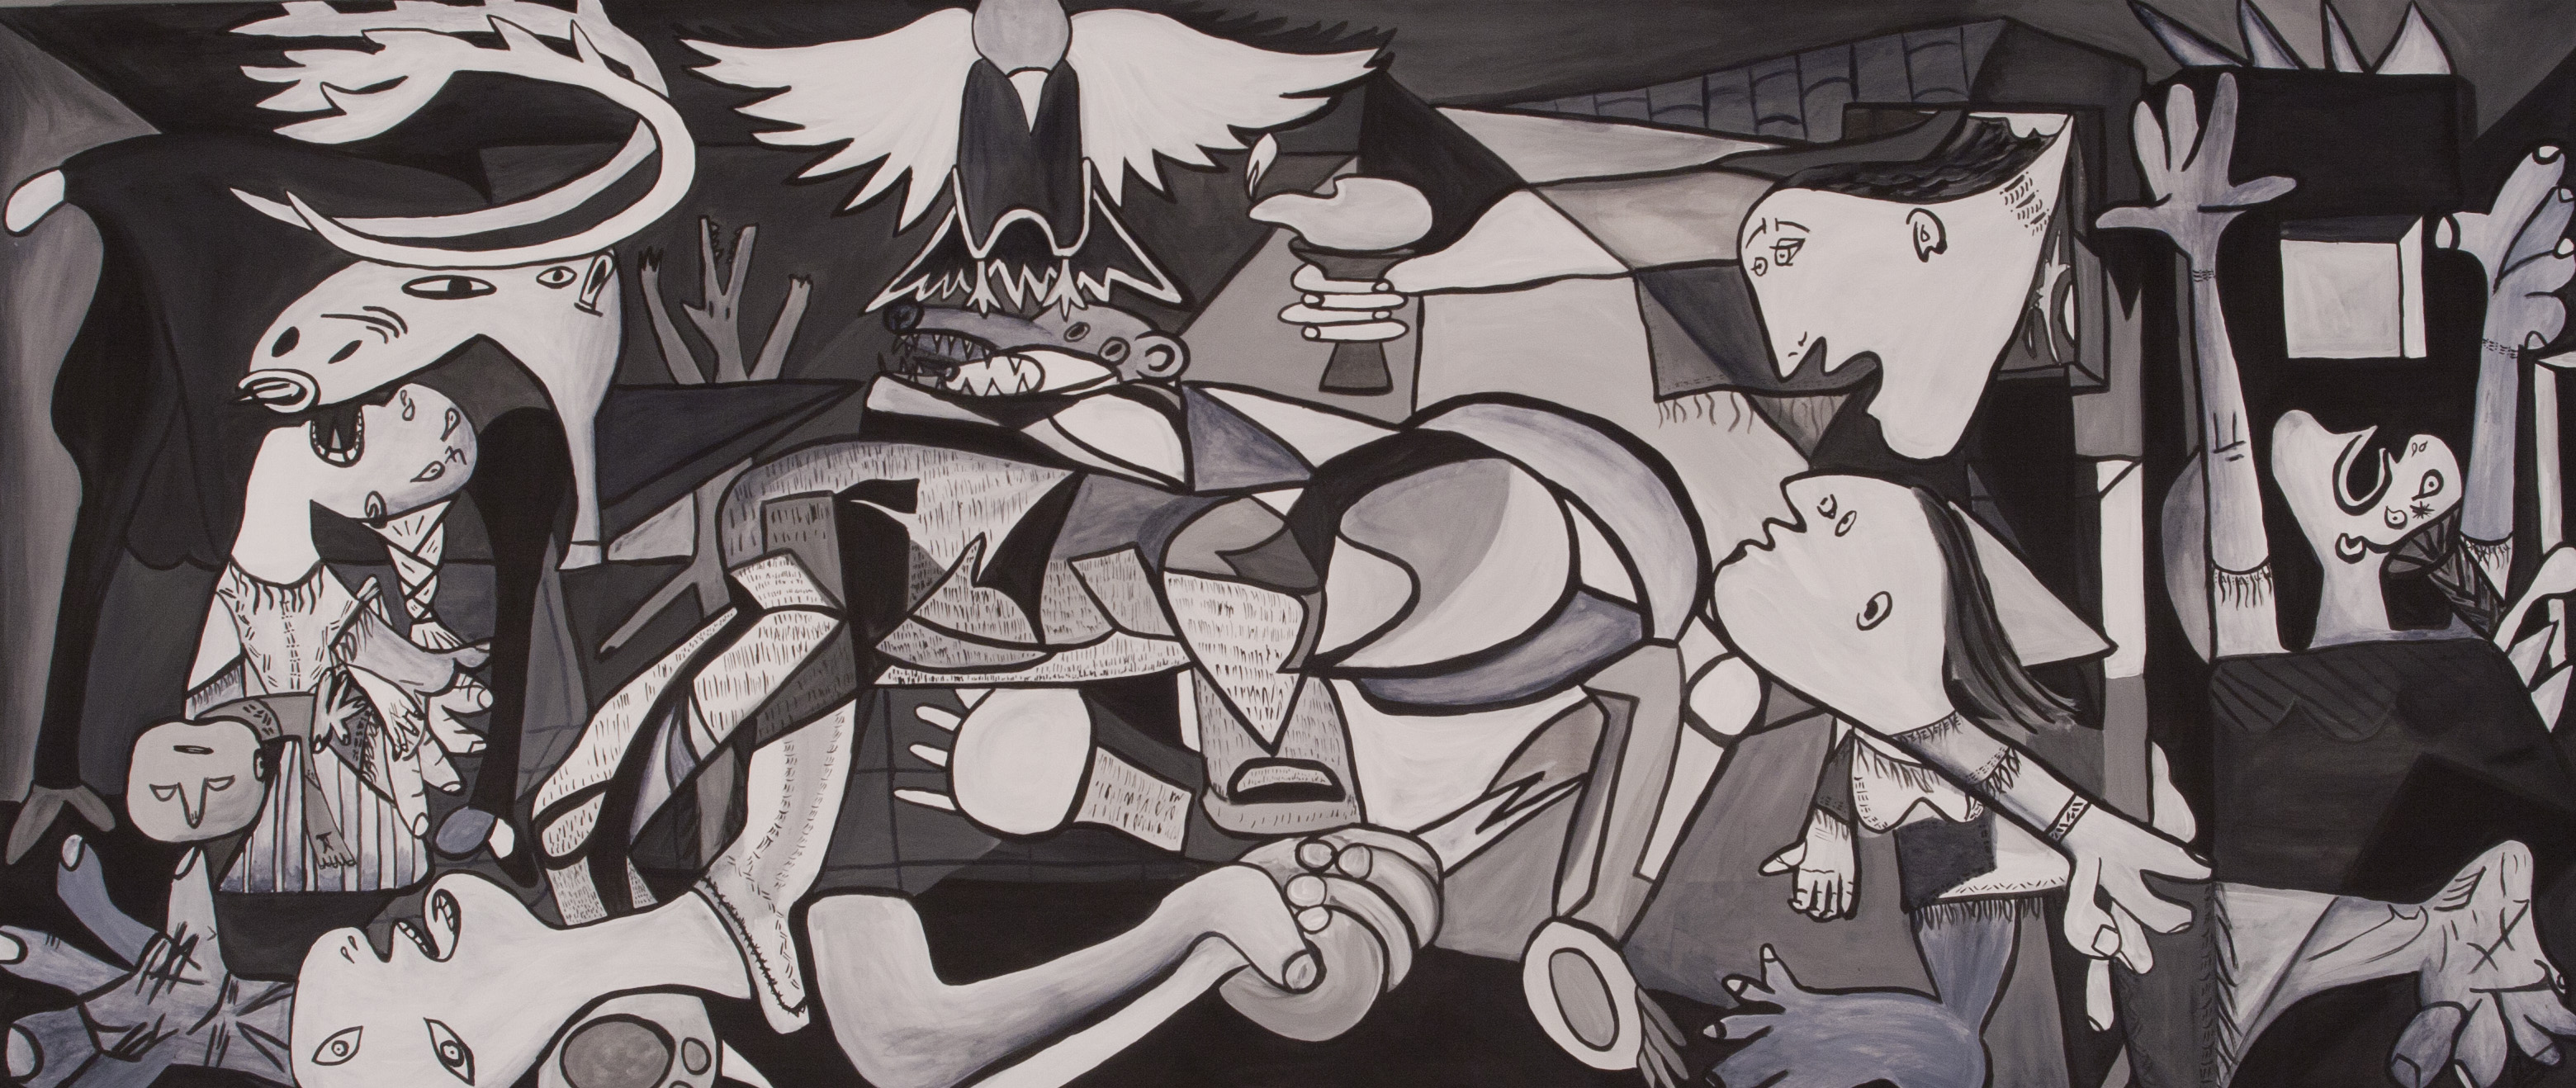 Misc Guernica 3120x1318px 100 Quality HD Wallpapers 3120x1318